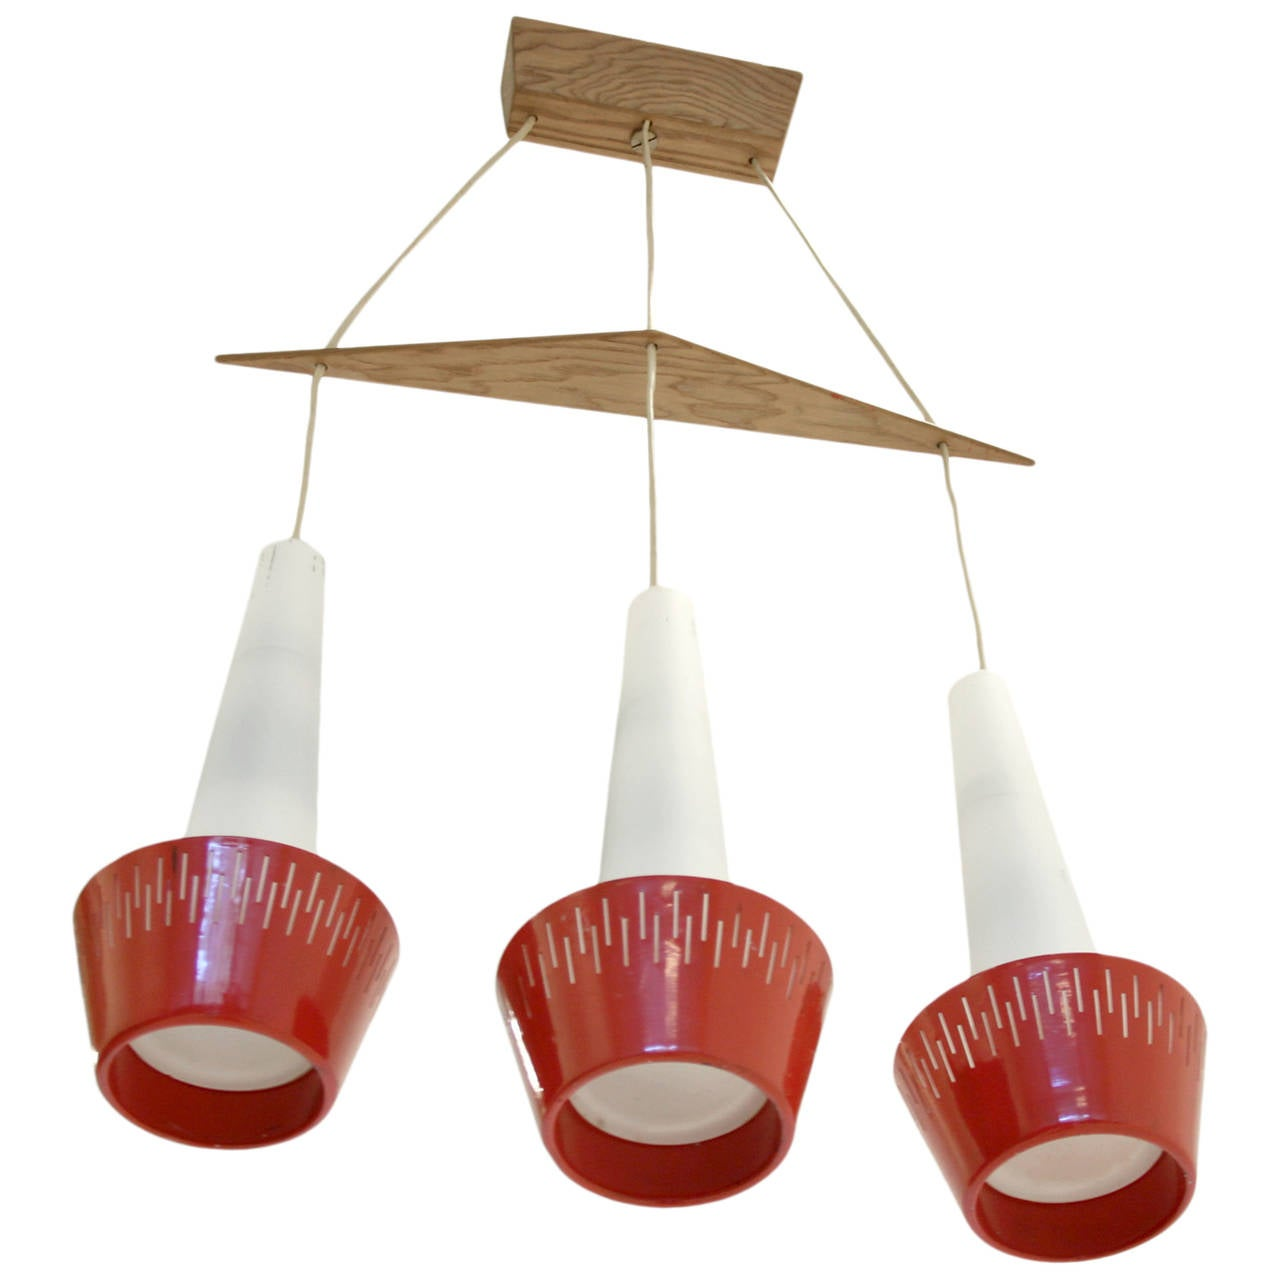 Midcentury Ceiling Lamp Or Pendants For Sale At 1stdibs